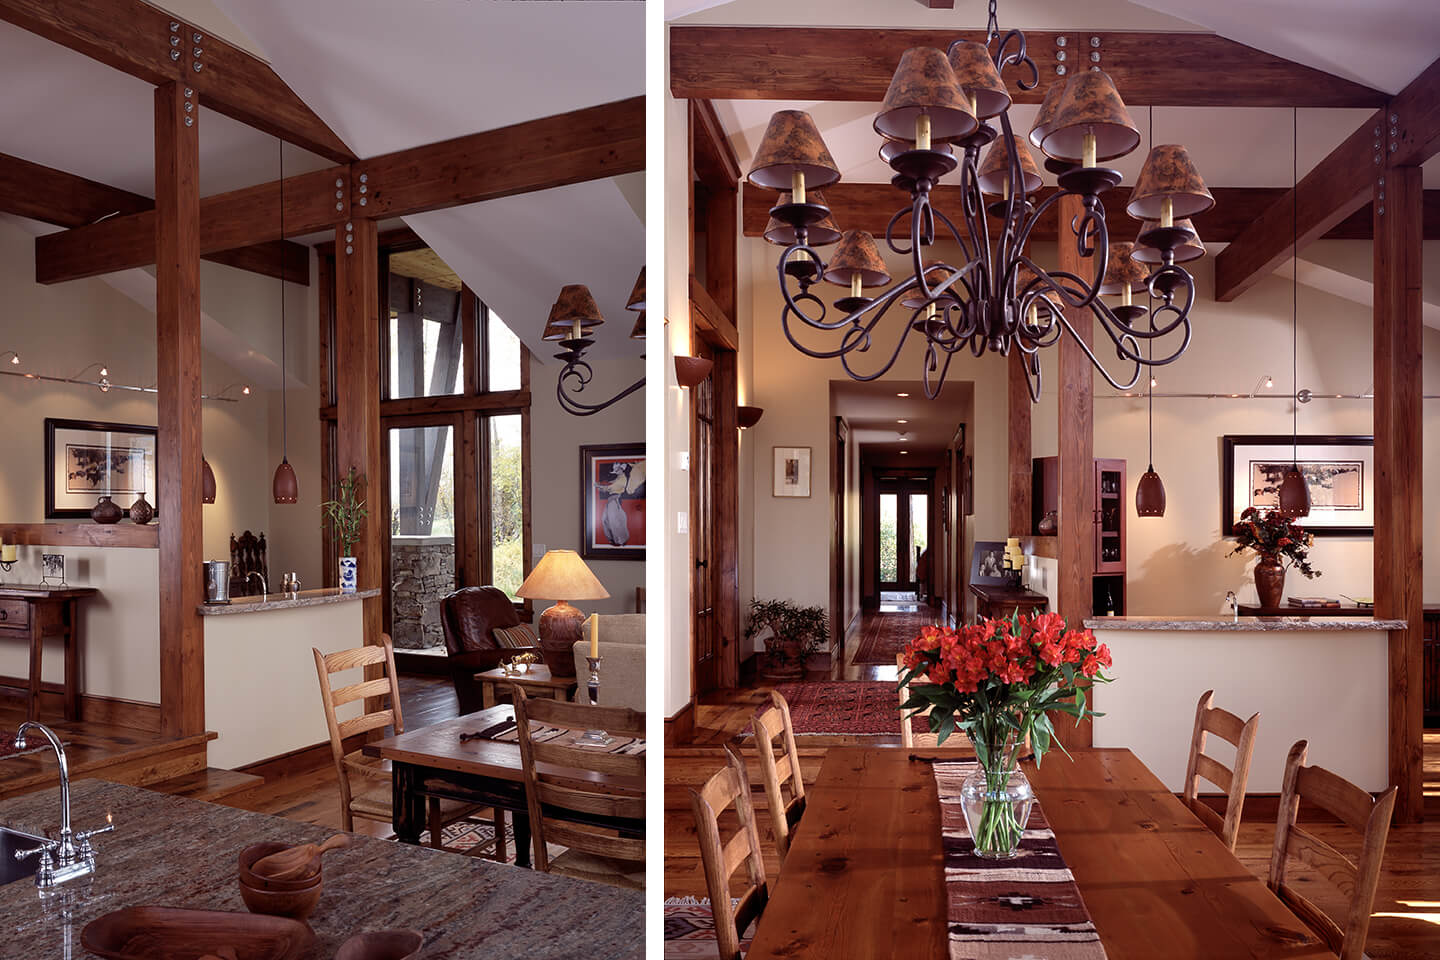 Interior view and wrought iron rustic chandelier